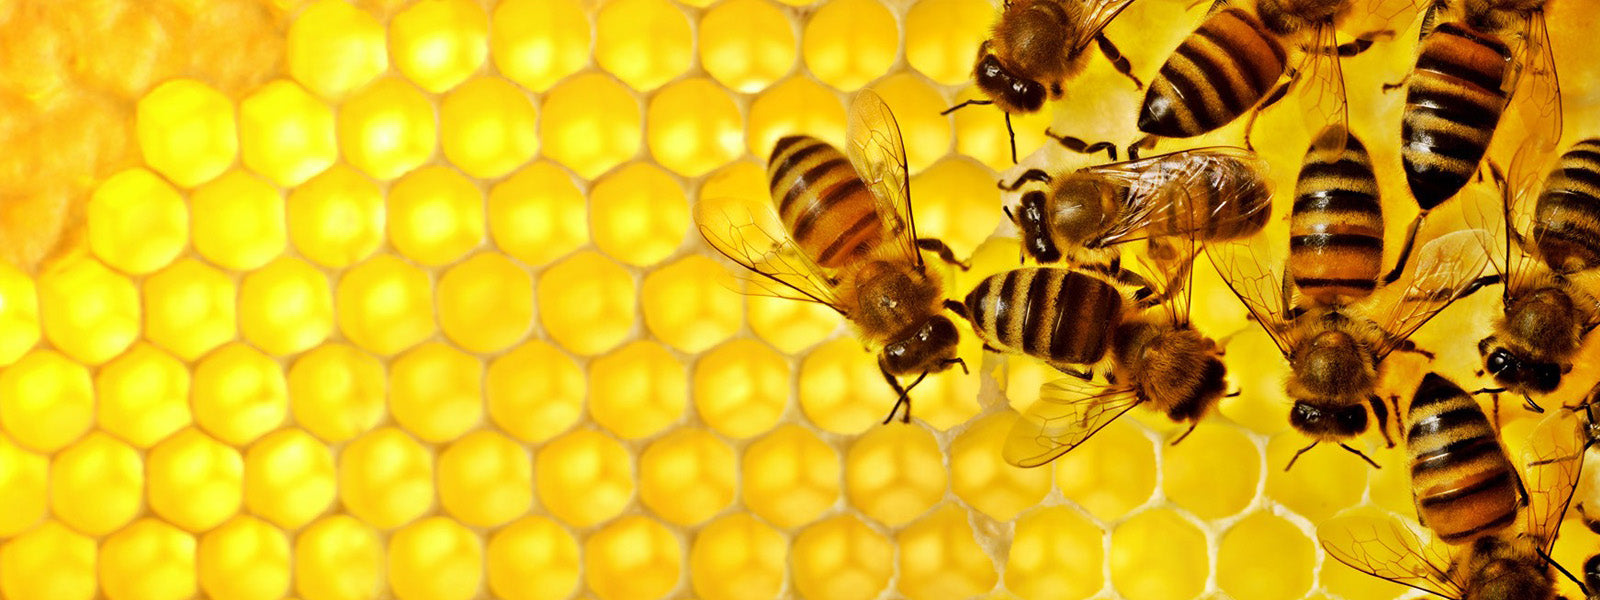 worker bees cleaning cells of comb